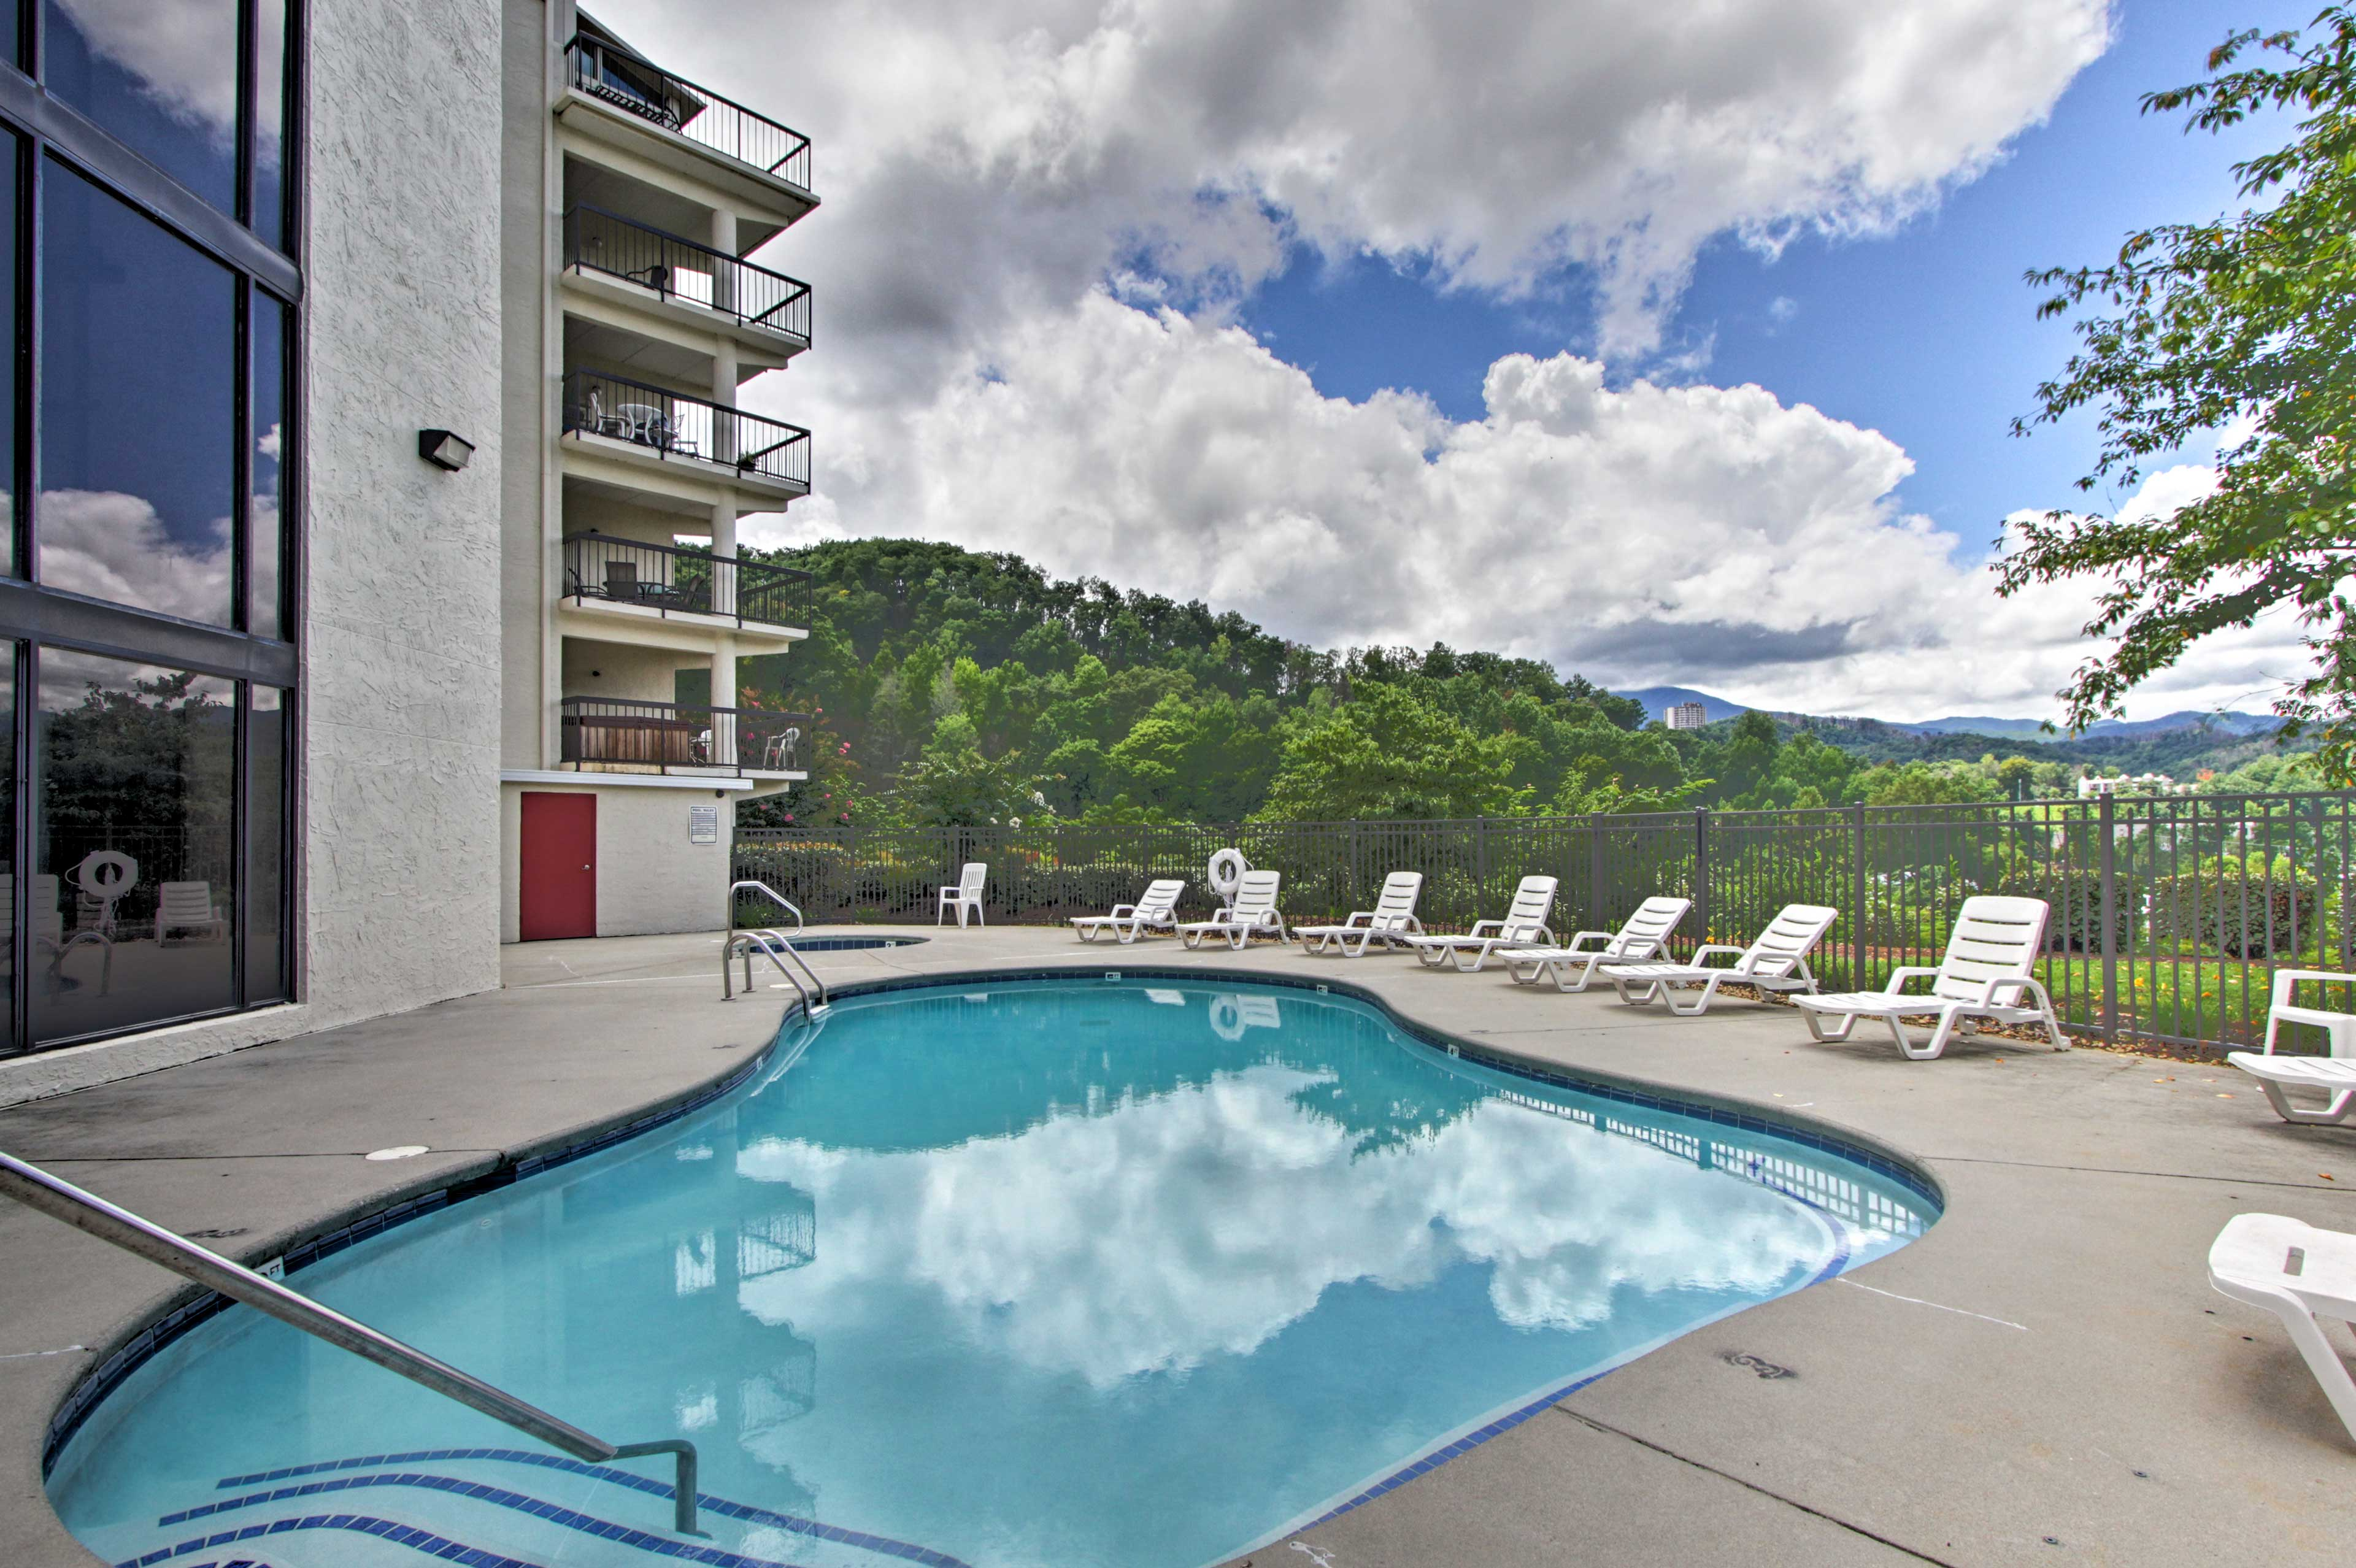 Take advantage of access to this beautiful pool facing the trees & mountains.